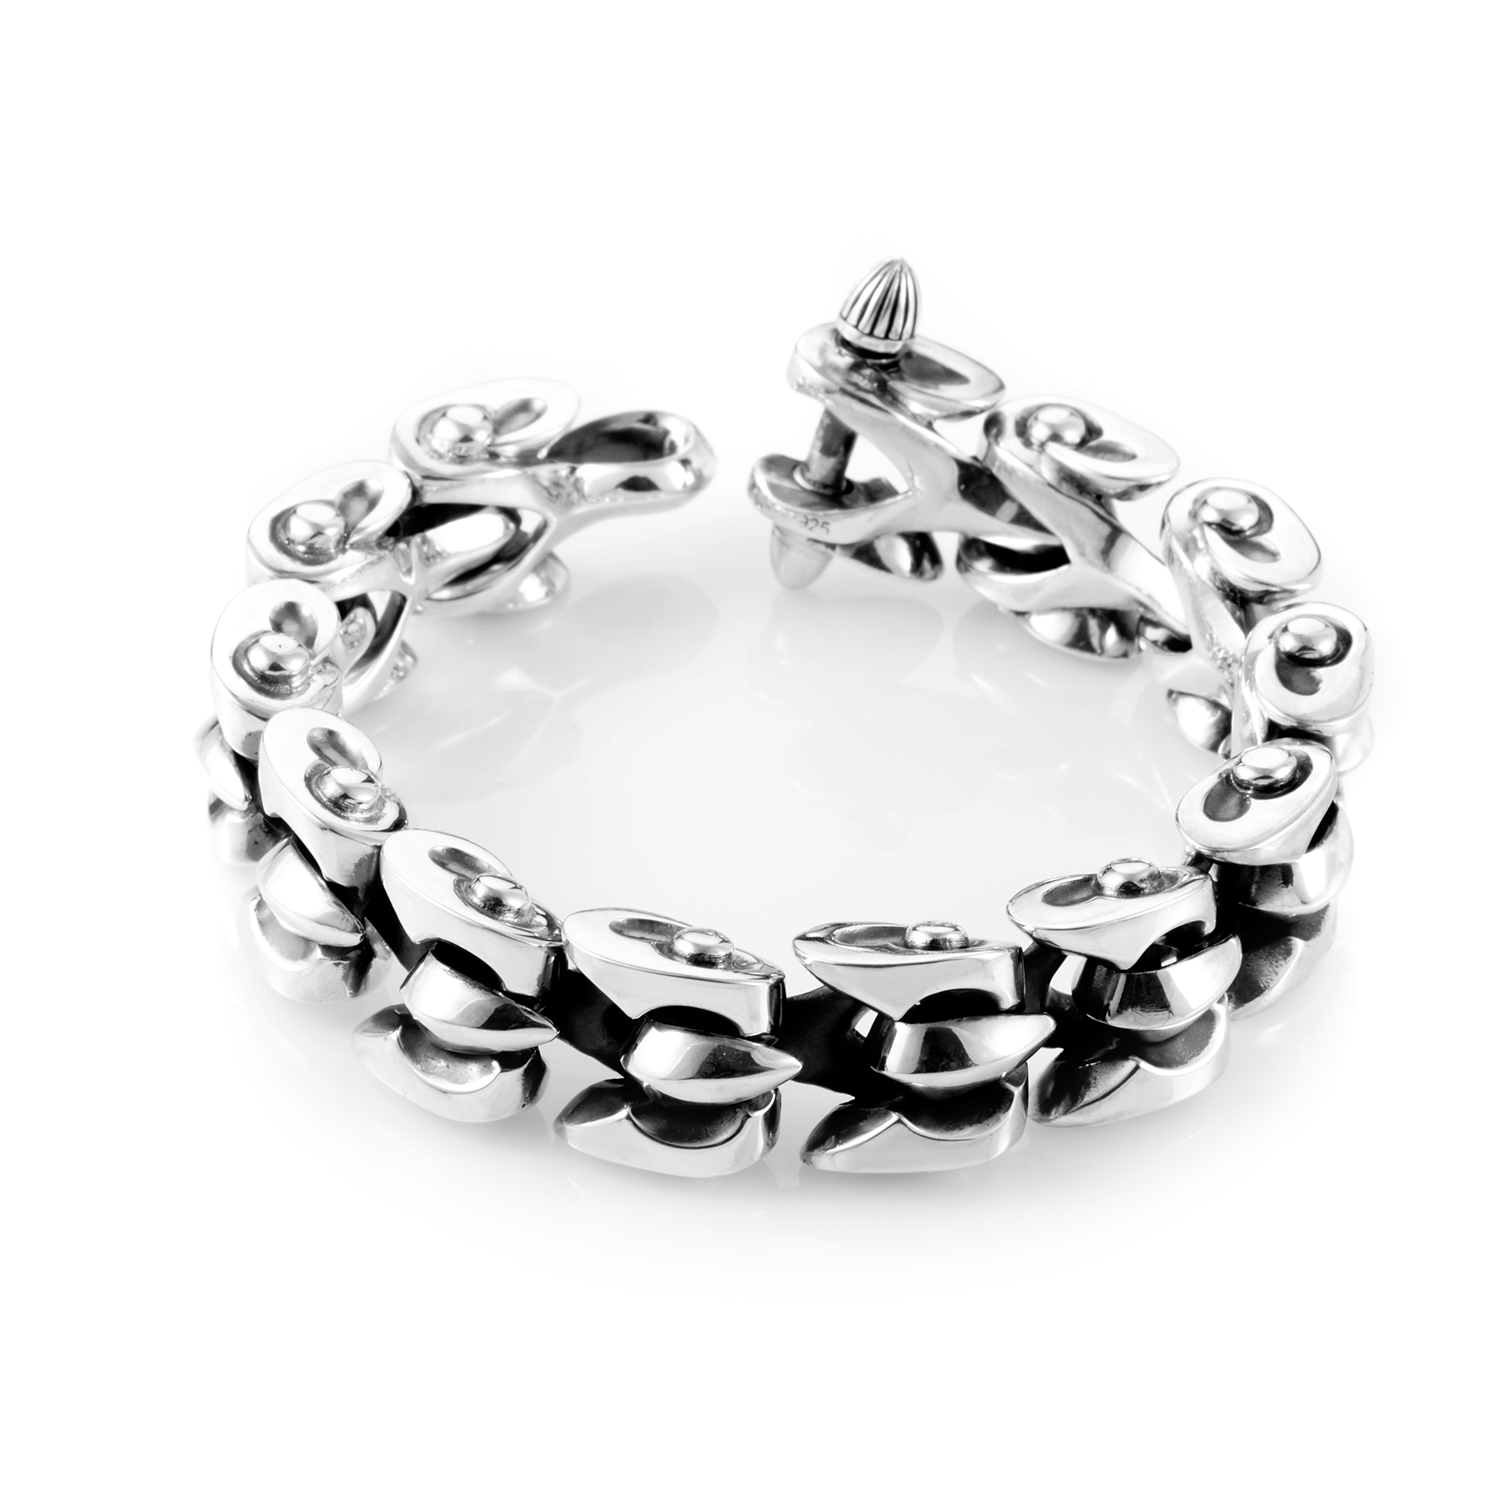 Thorn Men's Sterling Silver Rivet Men's Bracelet 3005113